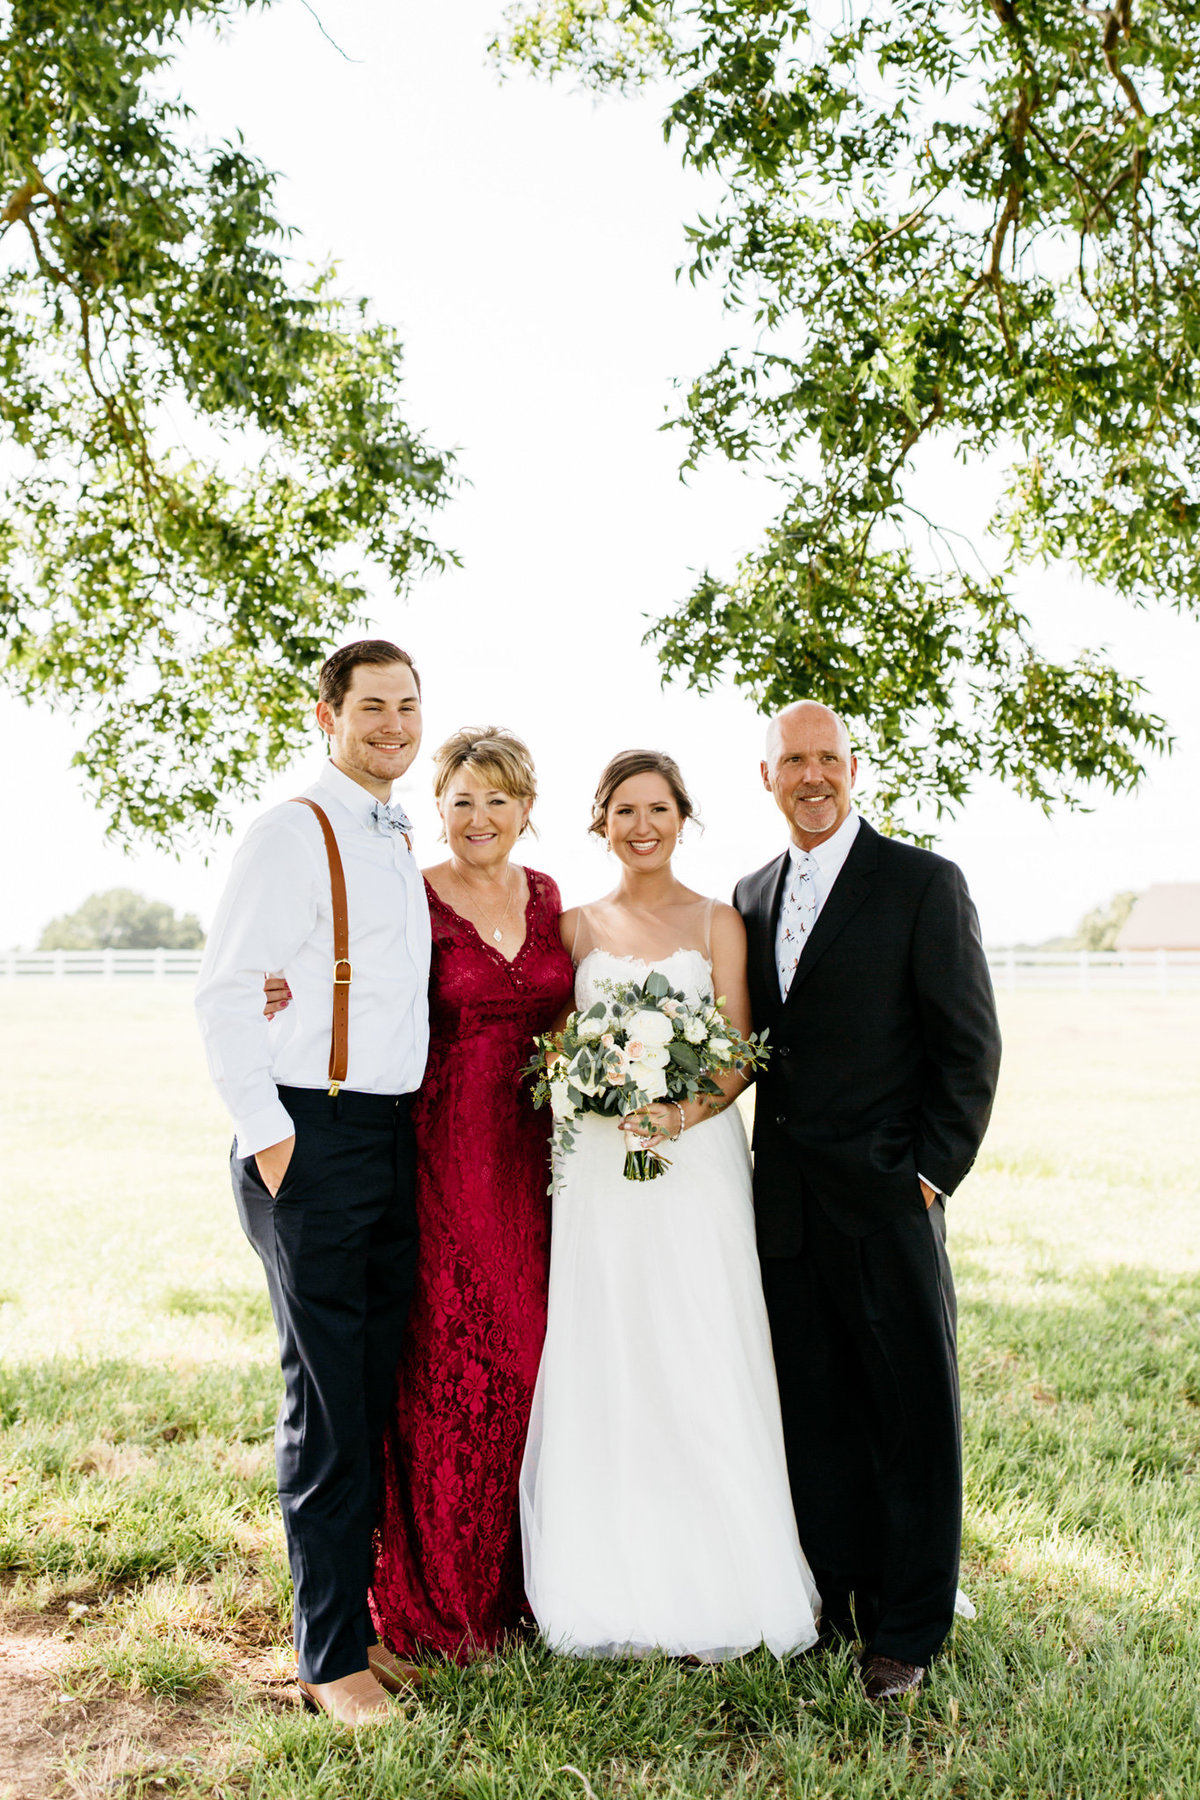 Alexa-Vossler-Photo_Dallas-Wedding-Photographer_North-Texas-Wedding-Photographer_Stephanie-Chase-Wedding-at-Morgan-Creek-Barn-Aubrey-Texas_20